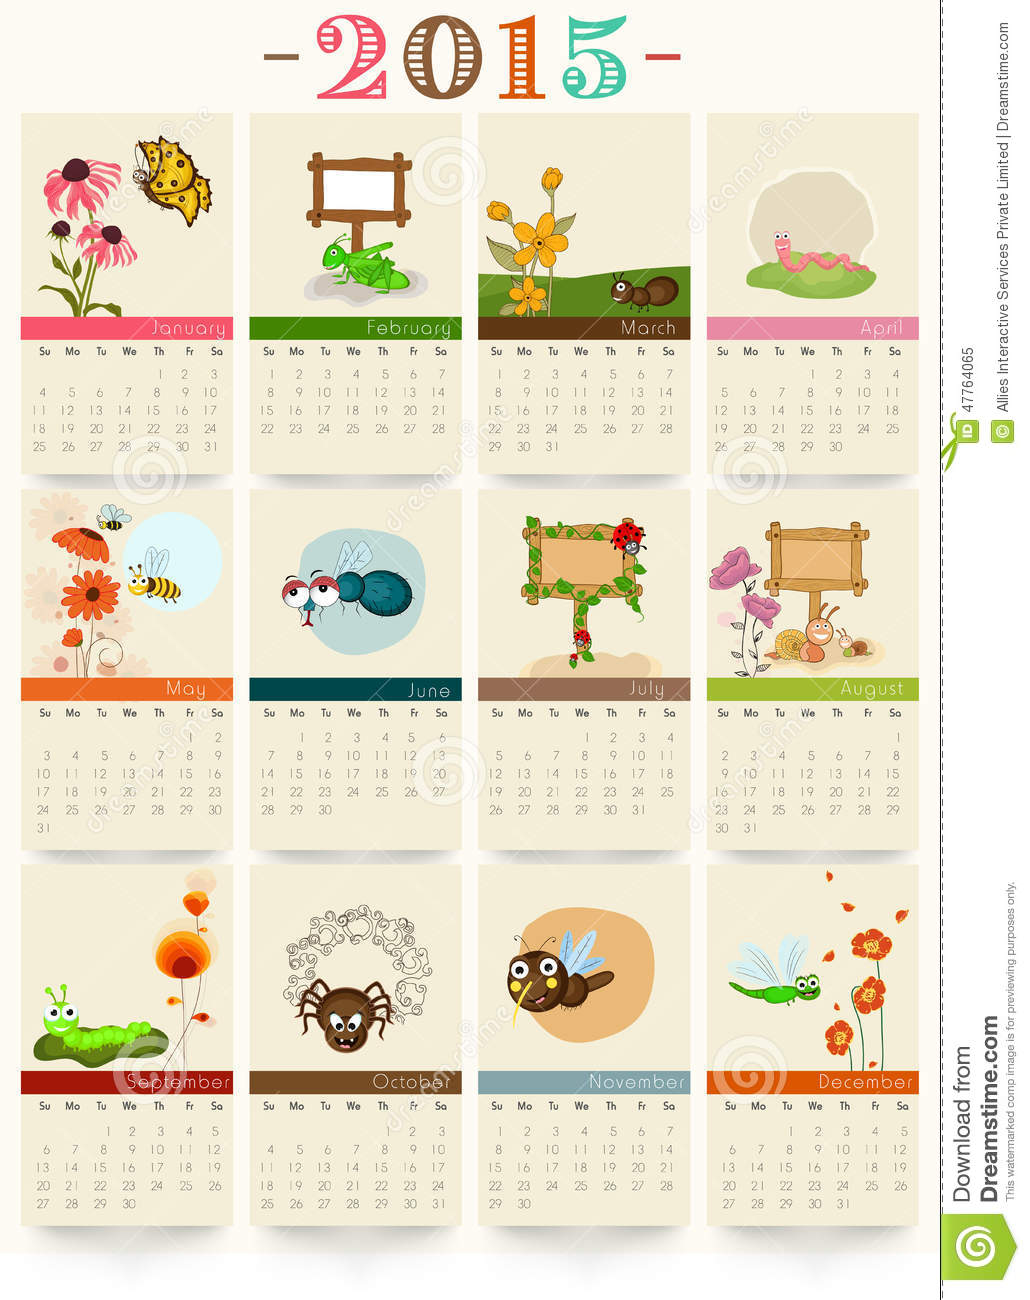 ... of 2015 with funny cartoon of insects for Happy New Year celebrations